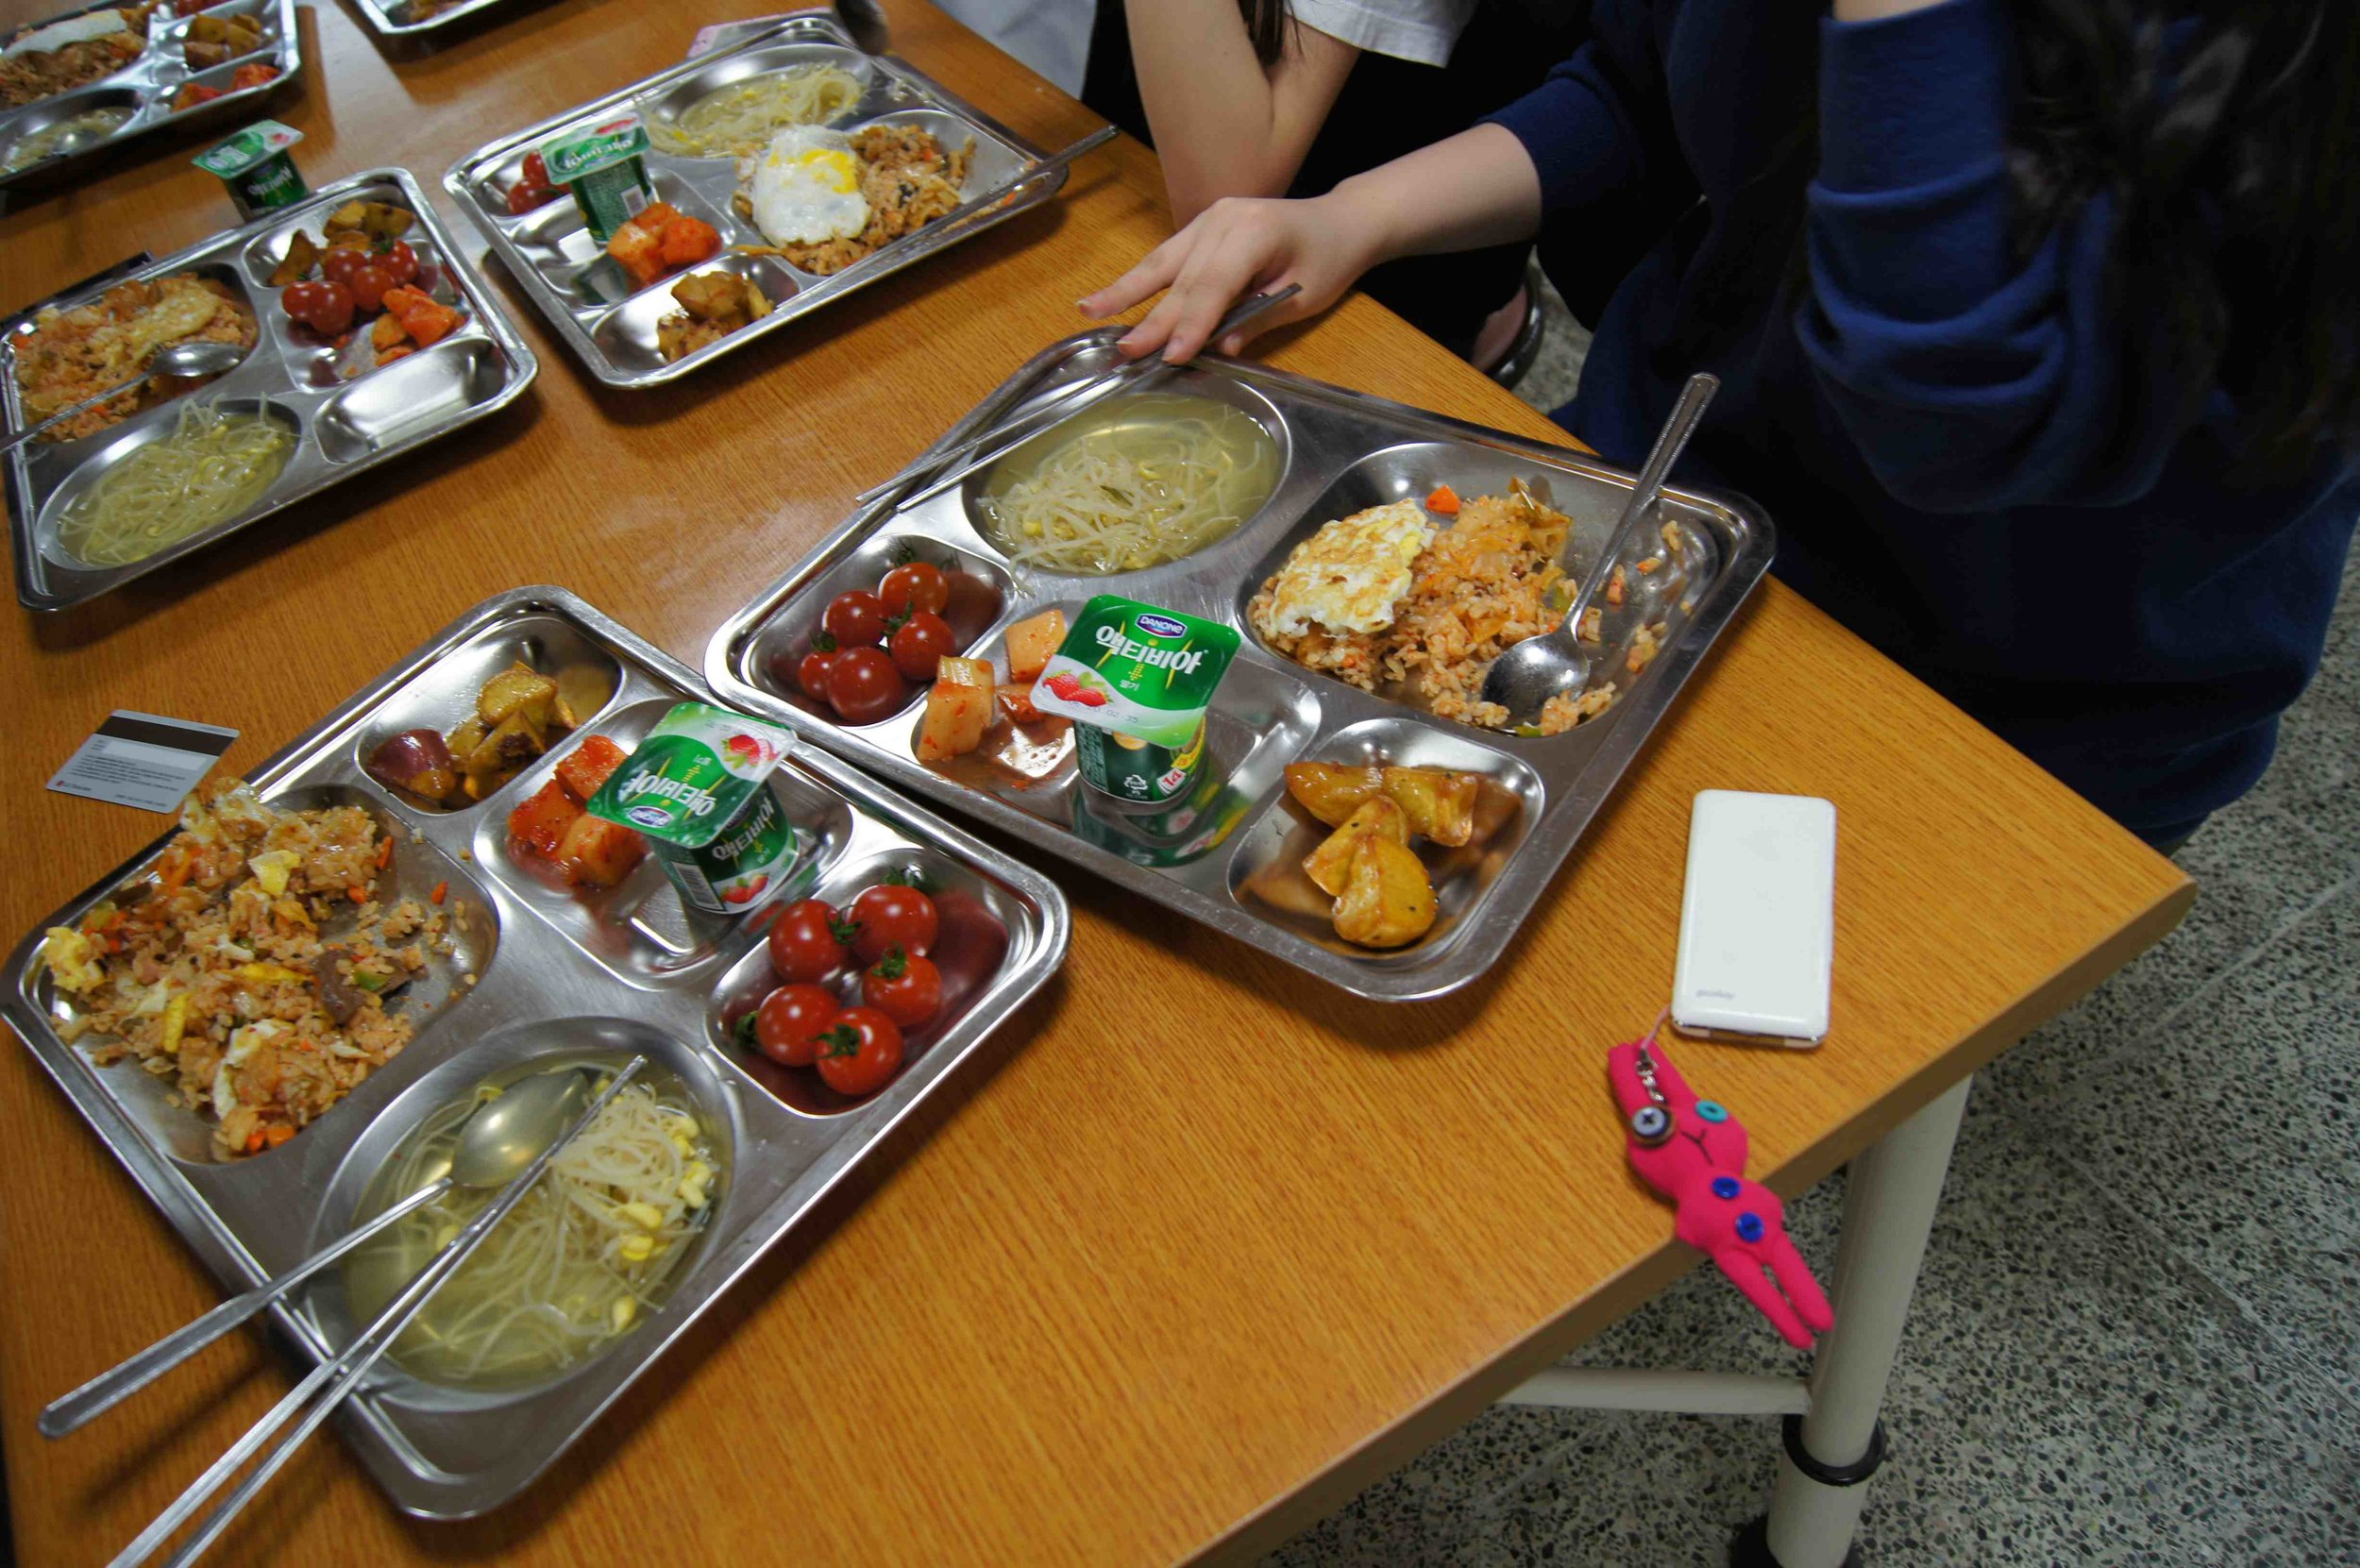 School_Lunch_korea_smaller_size.jpg